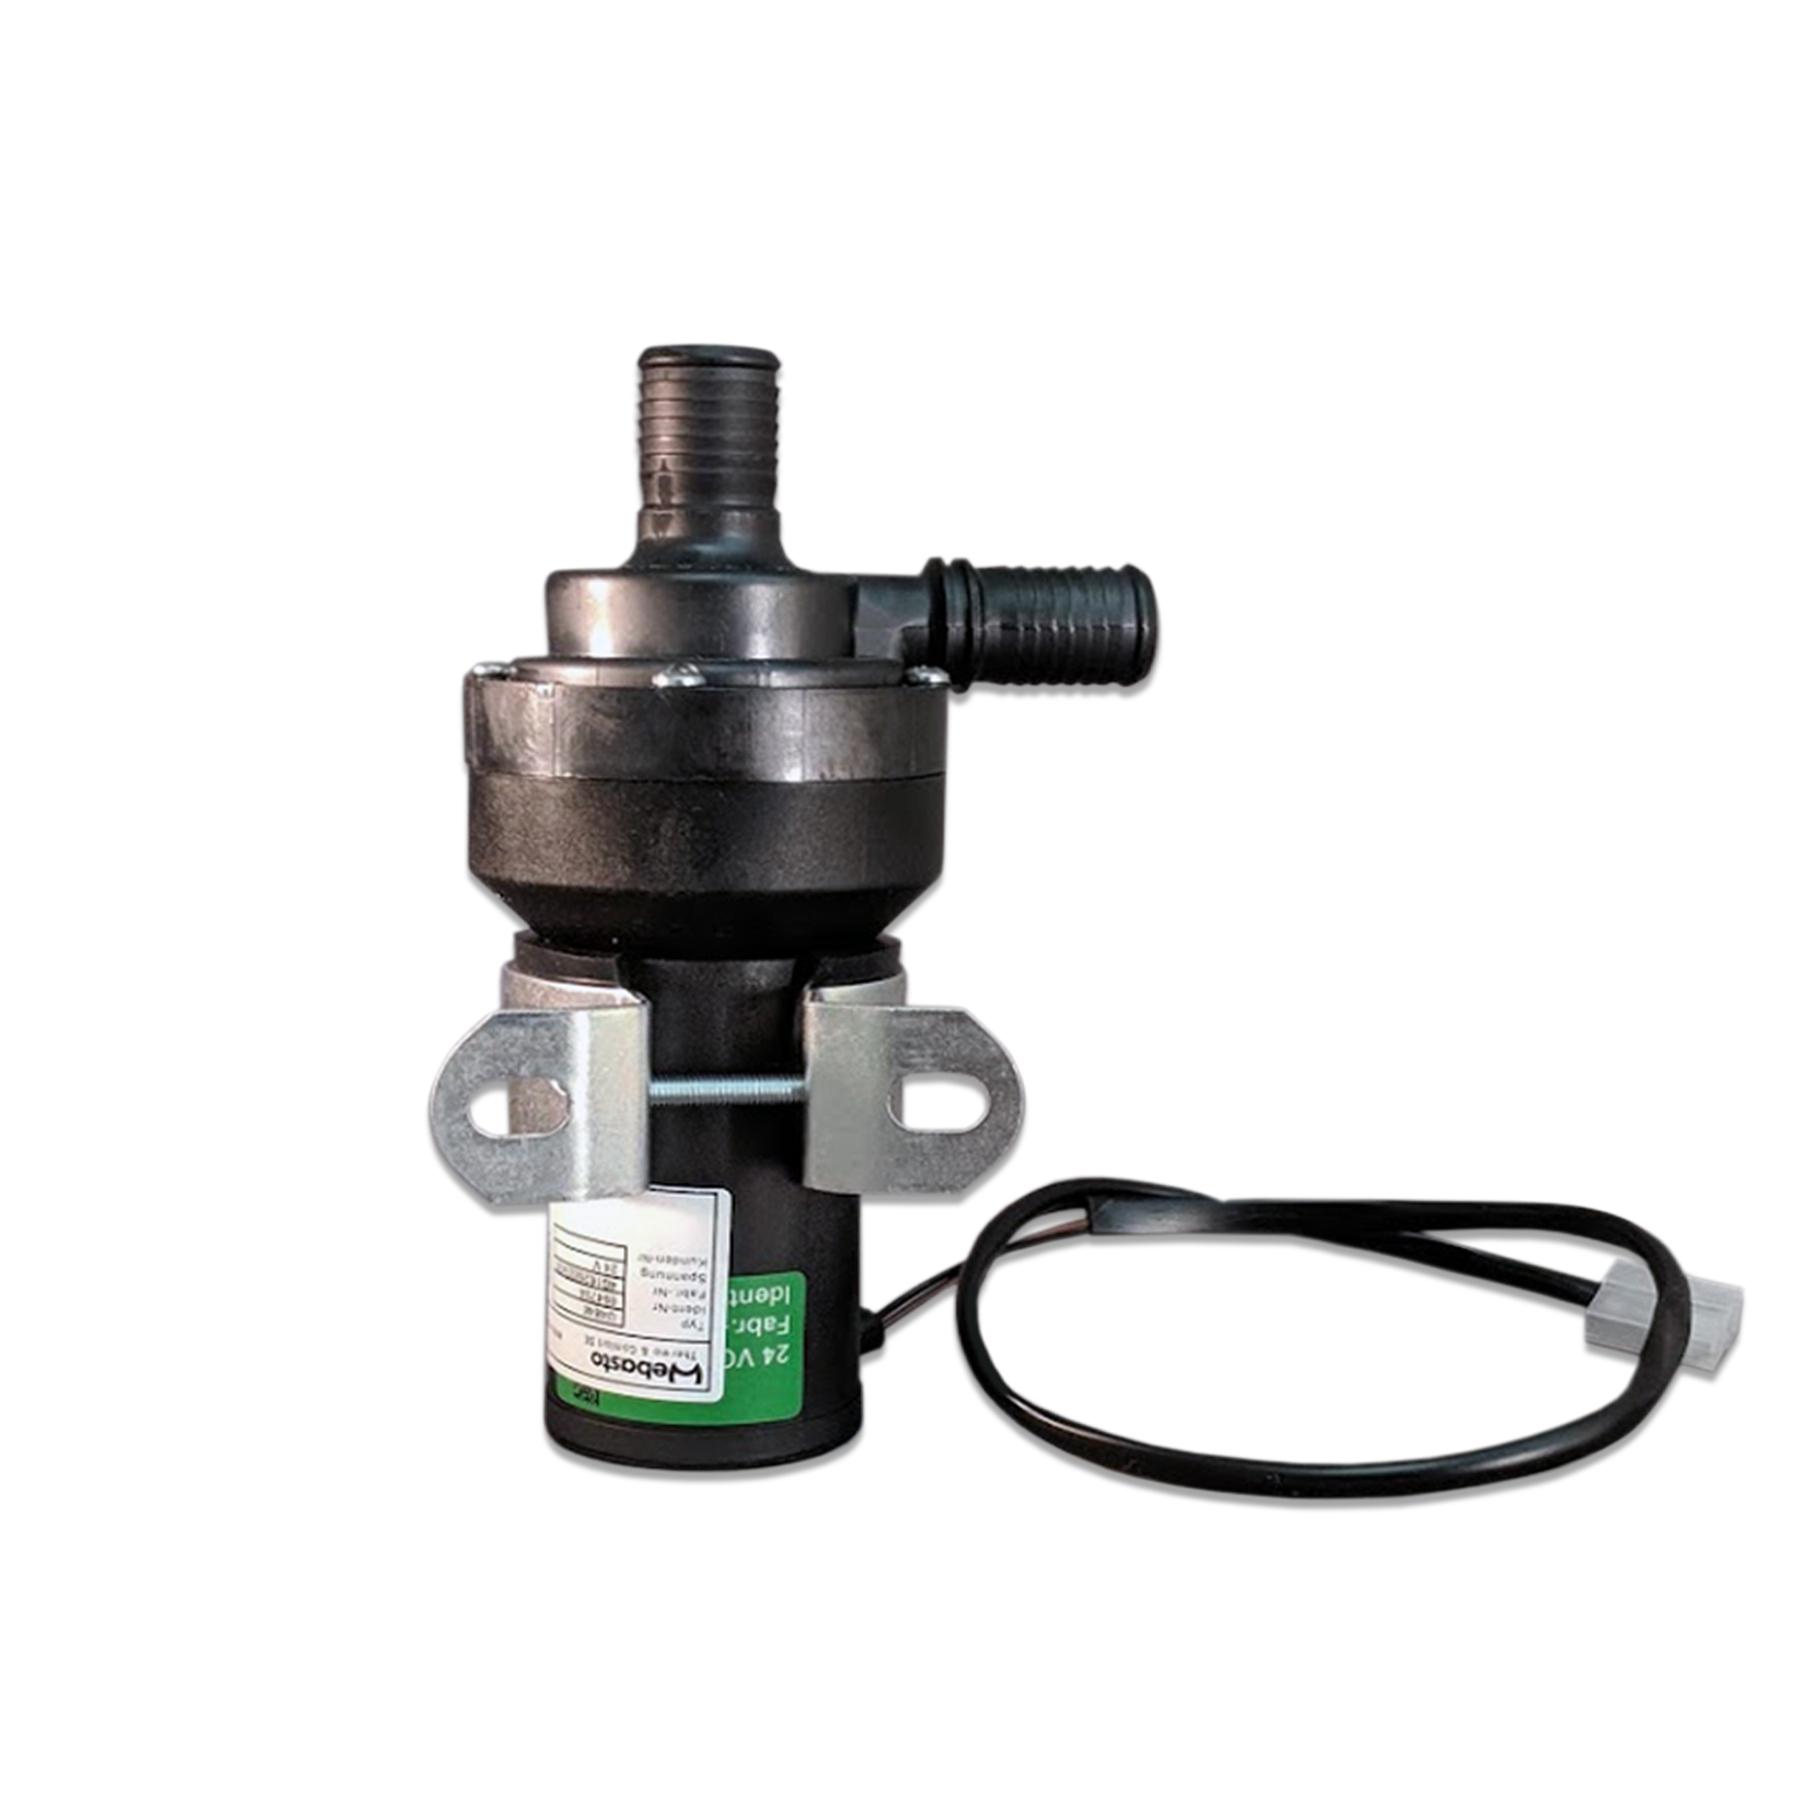 24 VDC U4846 Circulation Pump w/Mounting Bracket, TH-90